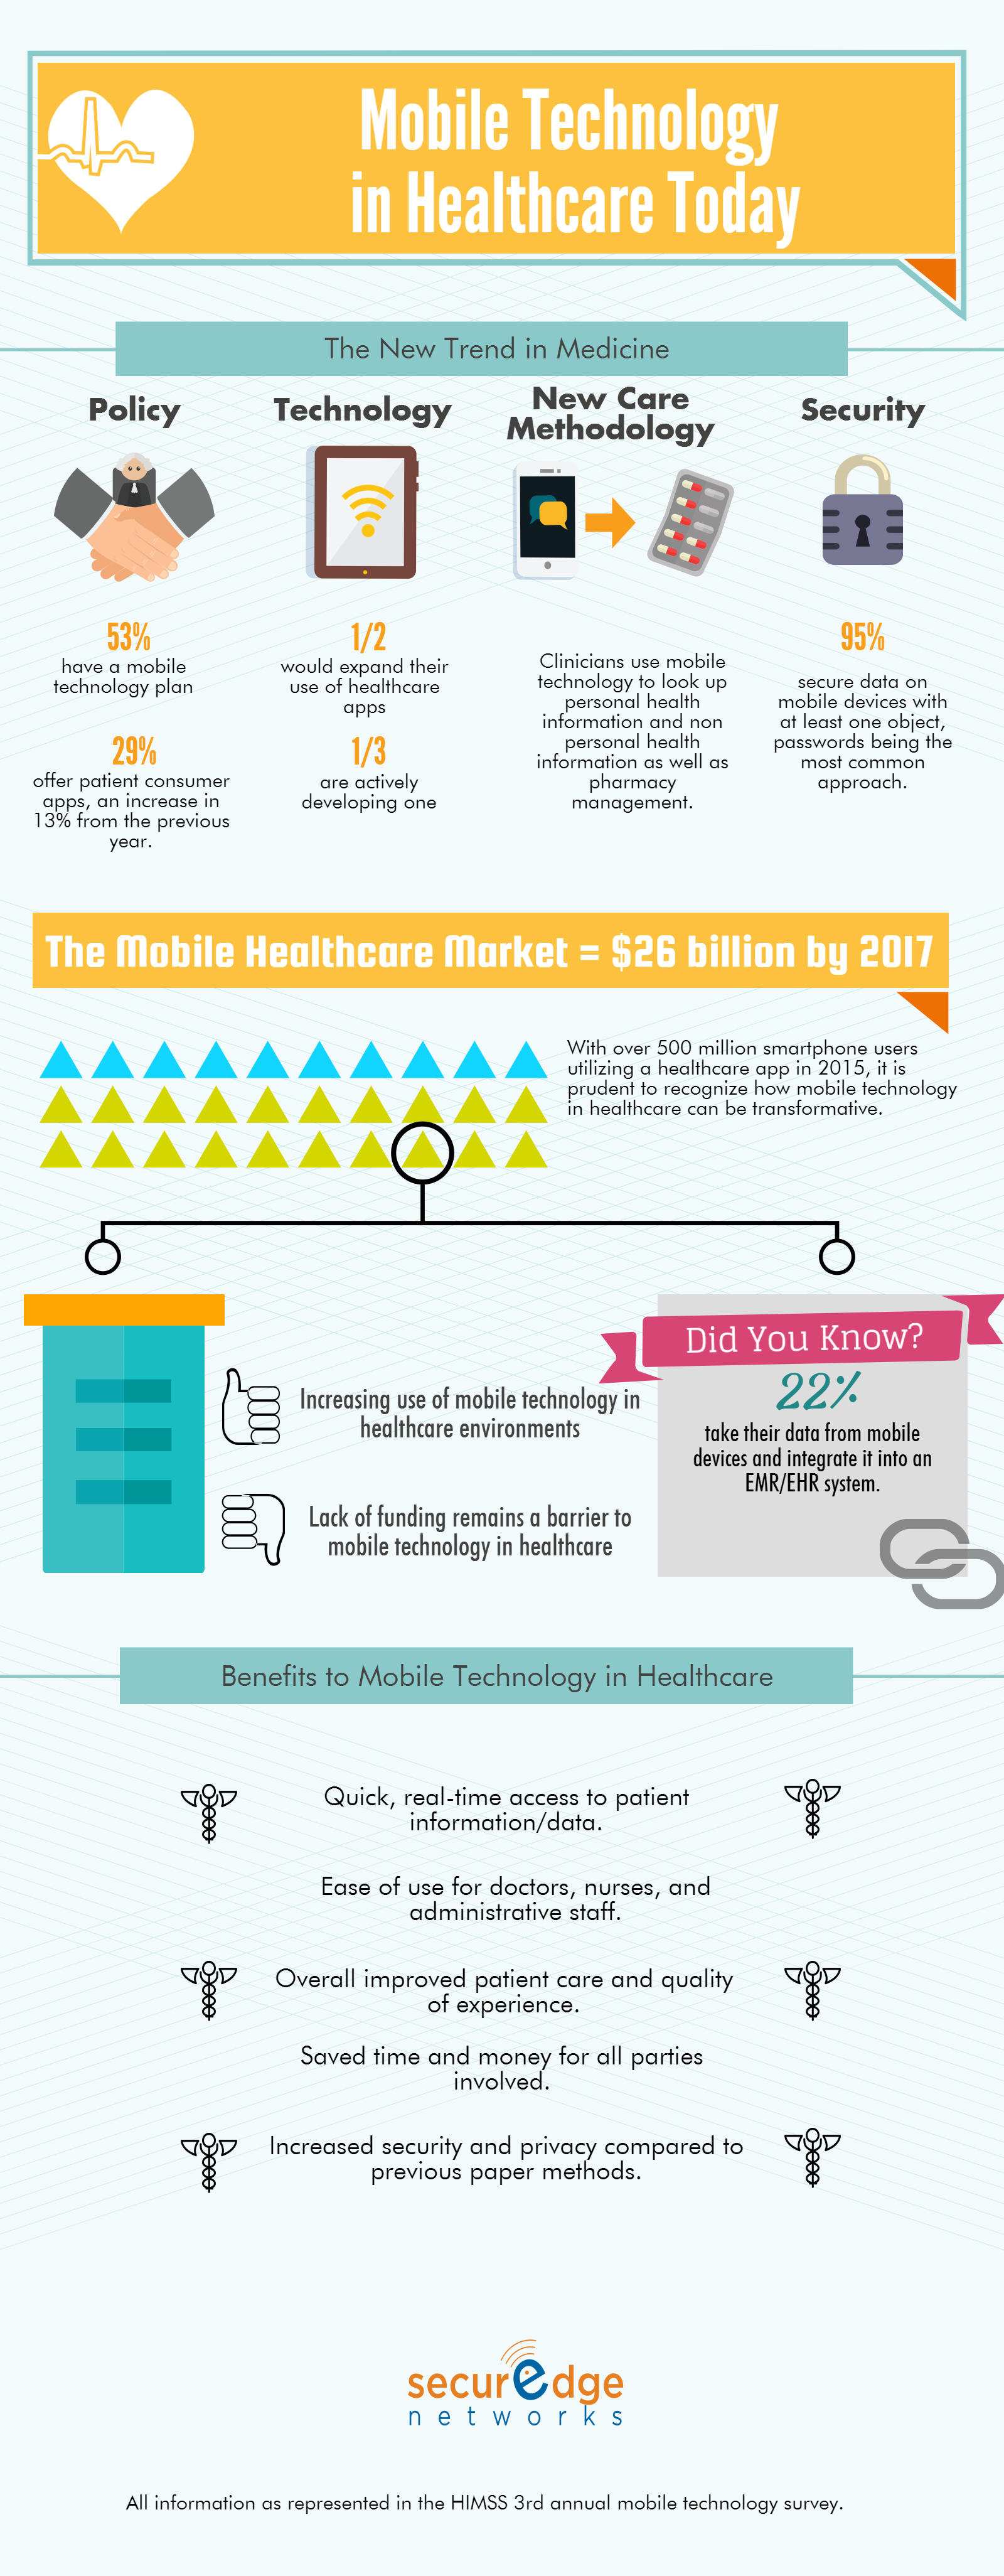 the_current_state_of_mobile_technology_use_in_healthcare_today_infographic.png